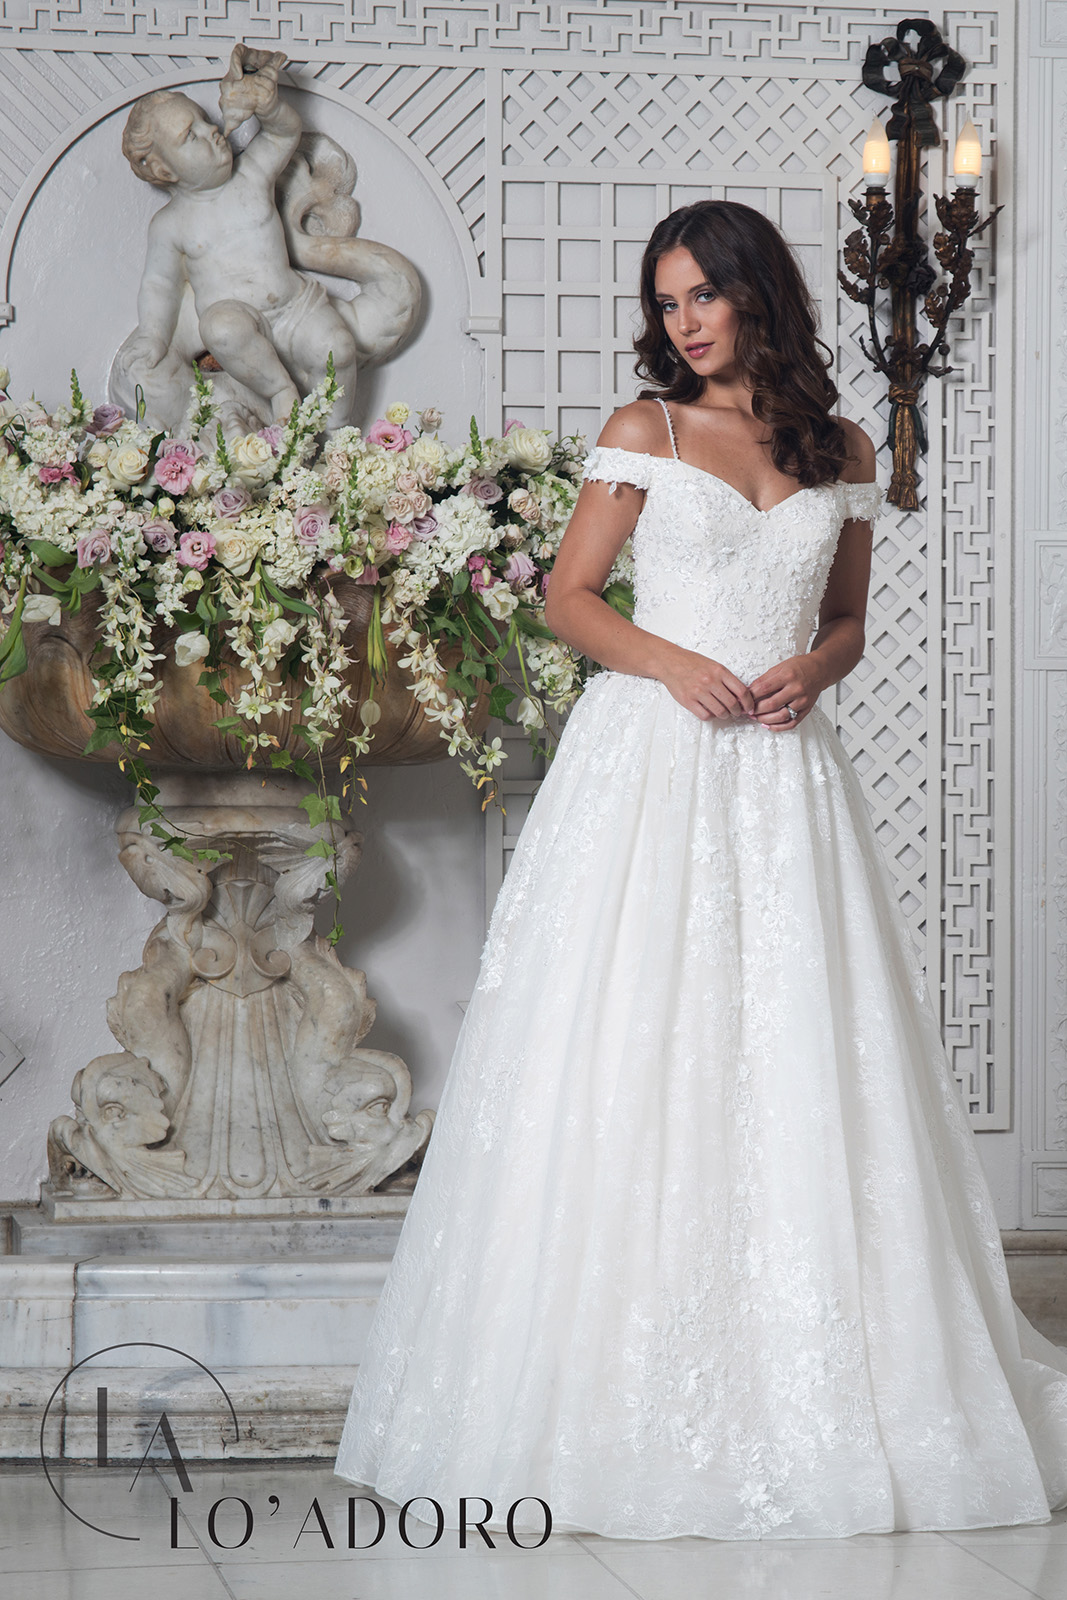 Off The Shoulder Ball Gowns Lo' Adoro Bridal in White Color